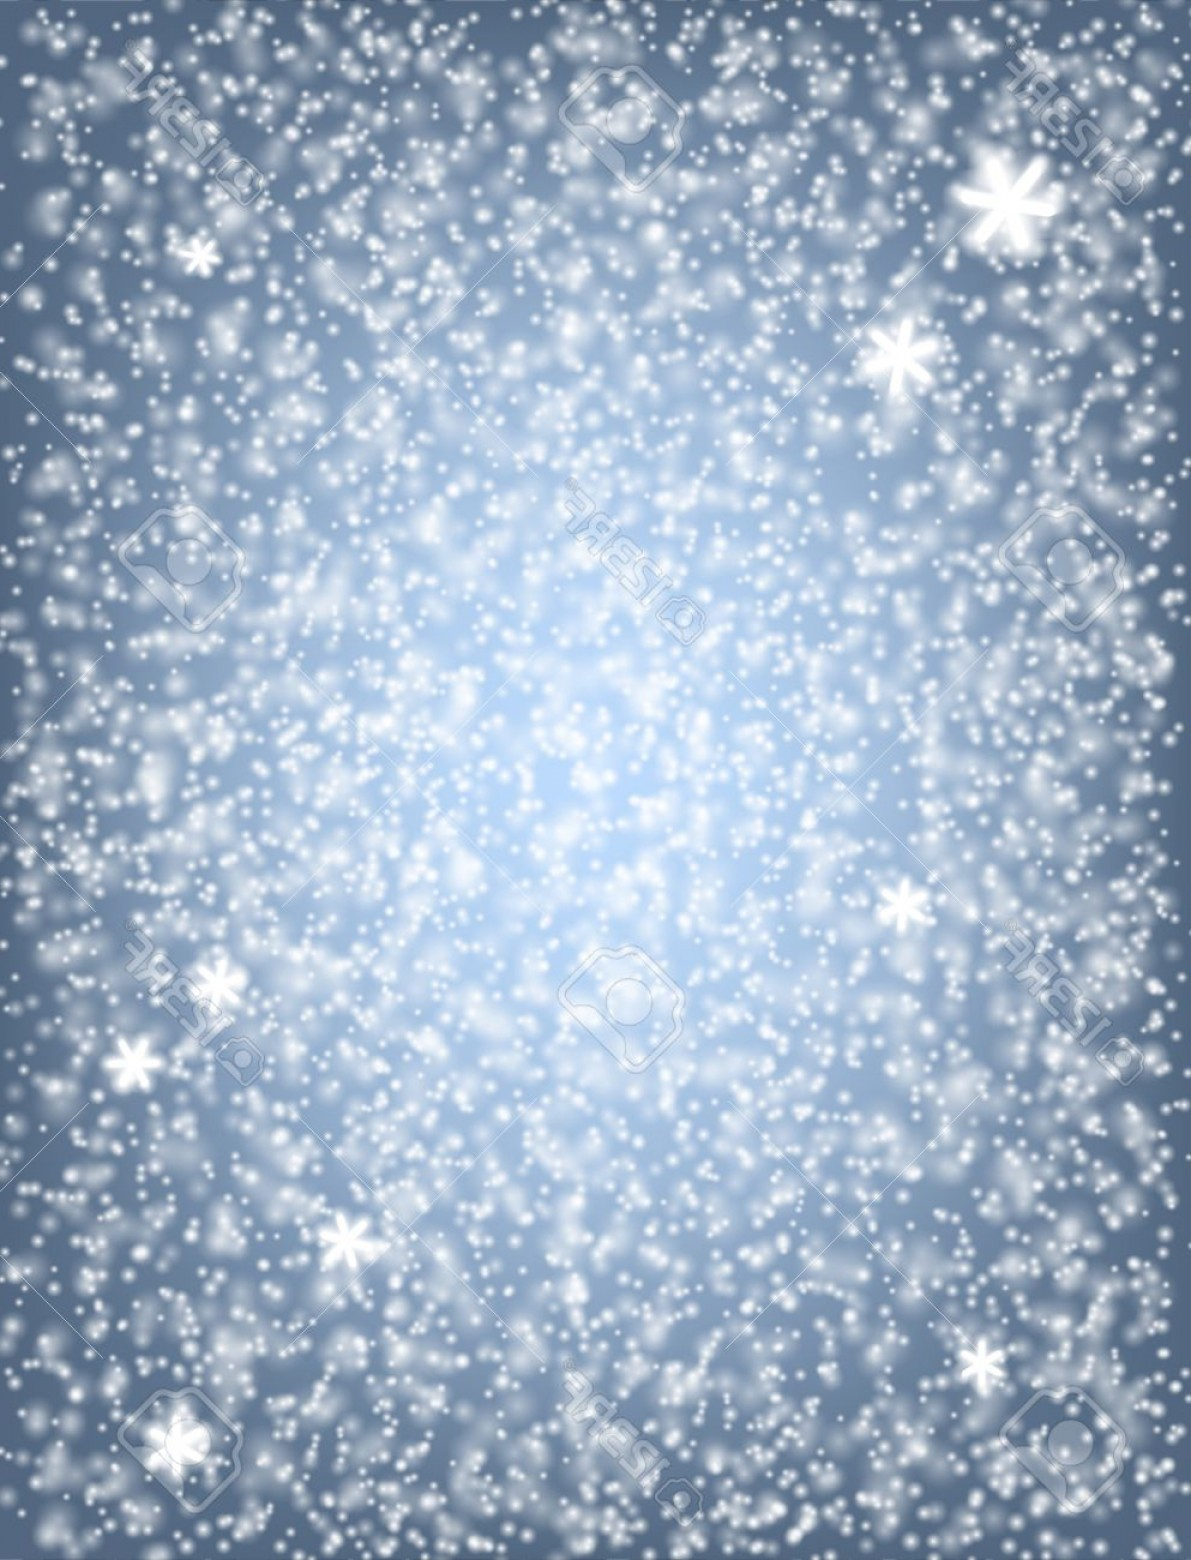 Snow Falling Vector Free: Photostock Vector Falling Snow Fluffy White Snow Falling Over Blue Winter Background Christmas Design